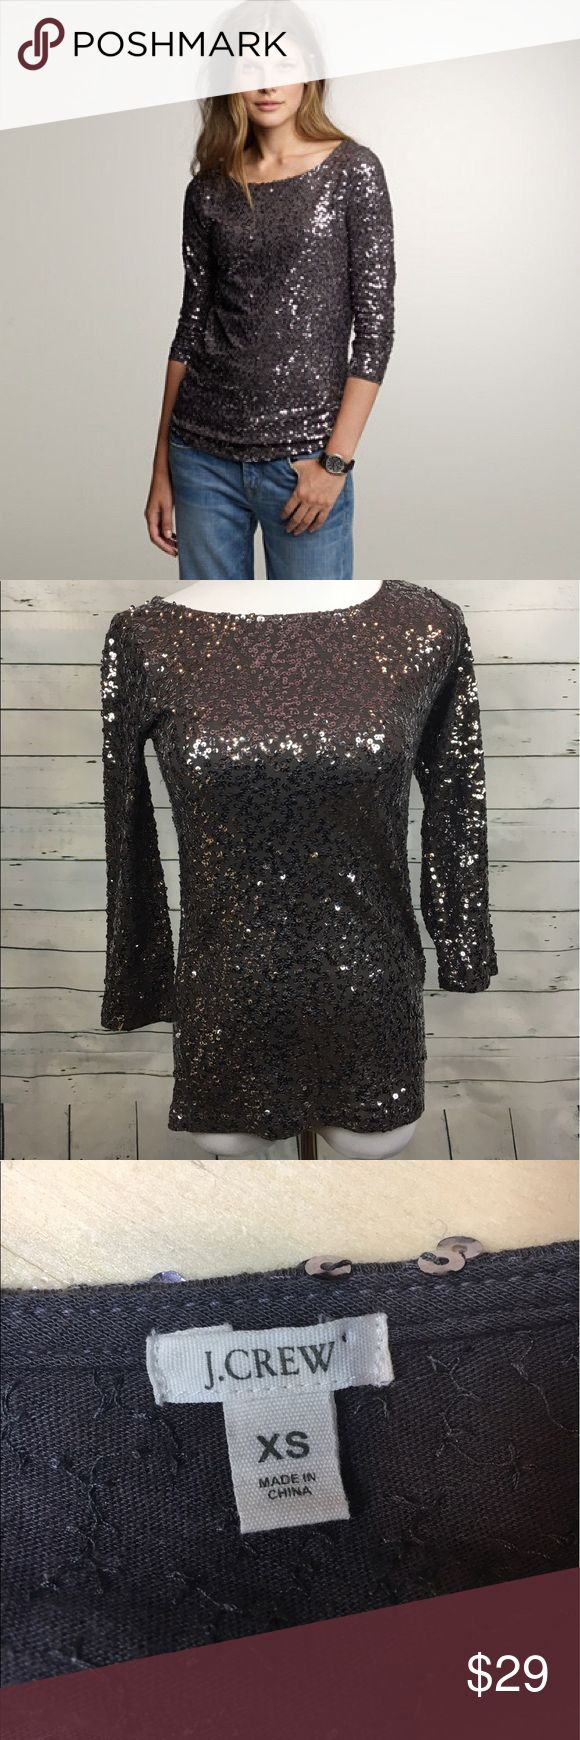 """J.Crew drapey sequin tee silver 3/4 sleeve Women's J.CREW Drapey sequin tee. 3/4 sleeves. size XS. Some pulling and loose threads  Armpit to armpit-16.5"""" Overall length-24"""" J. Crew Tops Blouses"""